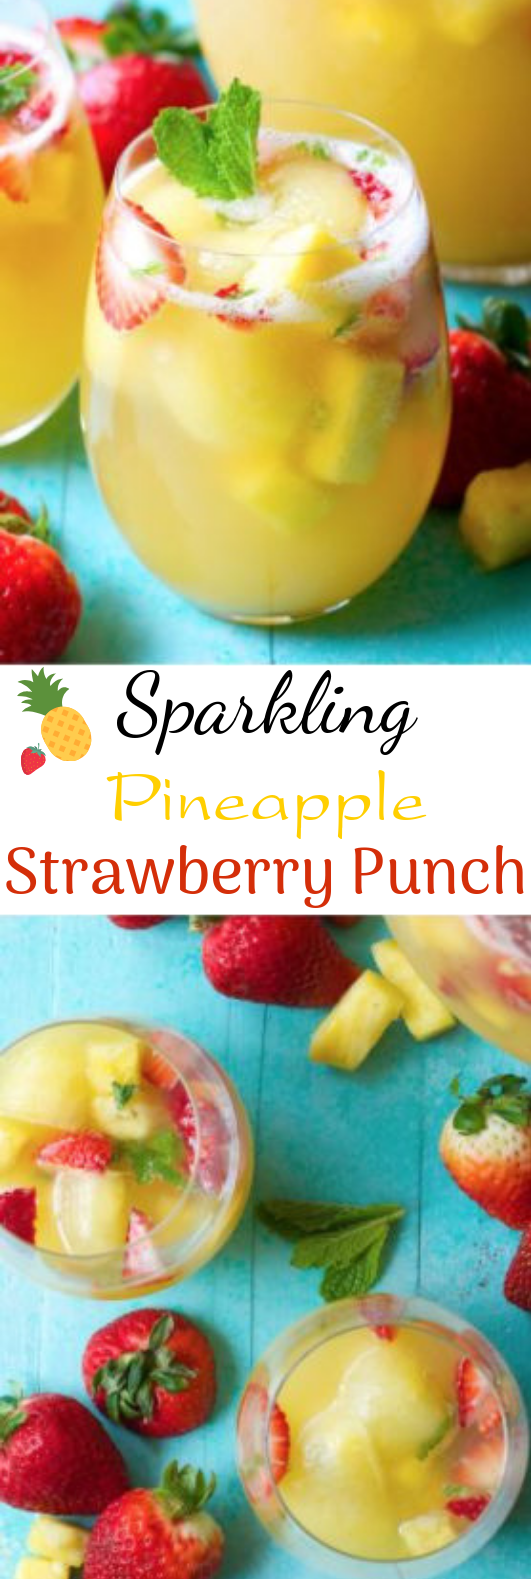 Sparkling Pineapple Strawberry Punch #drink #summer